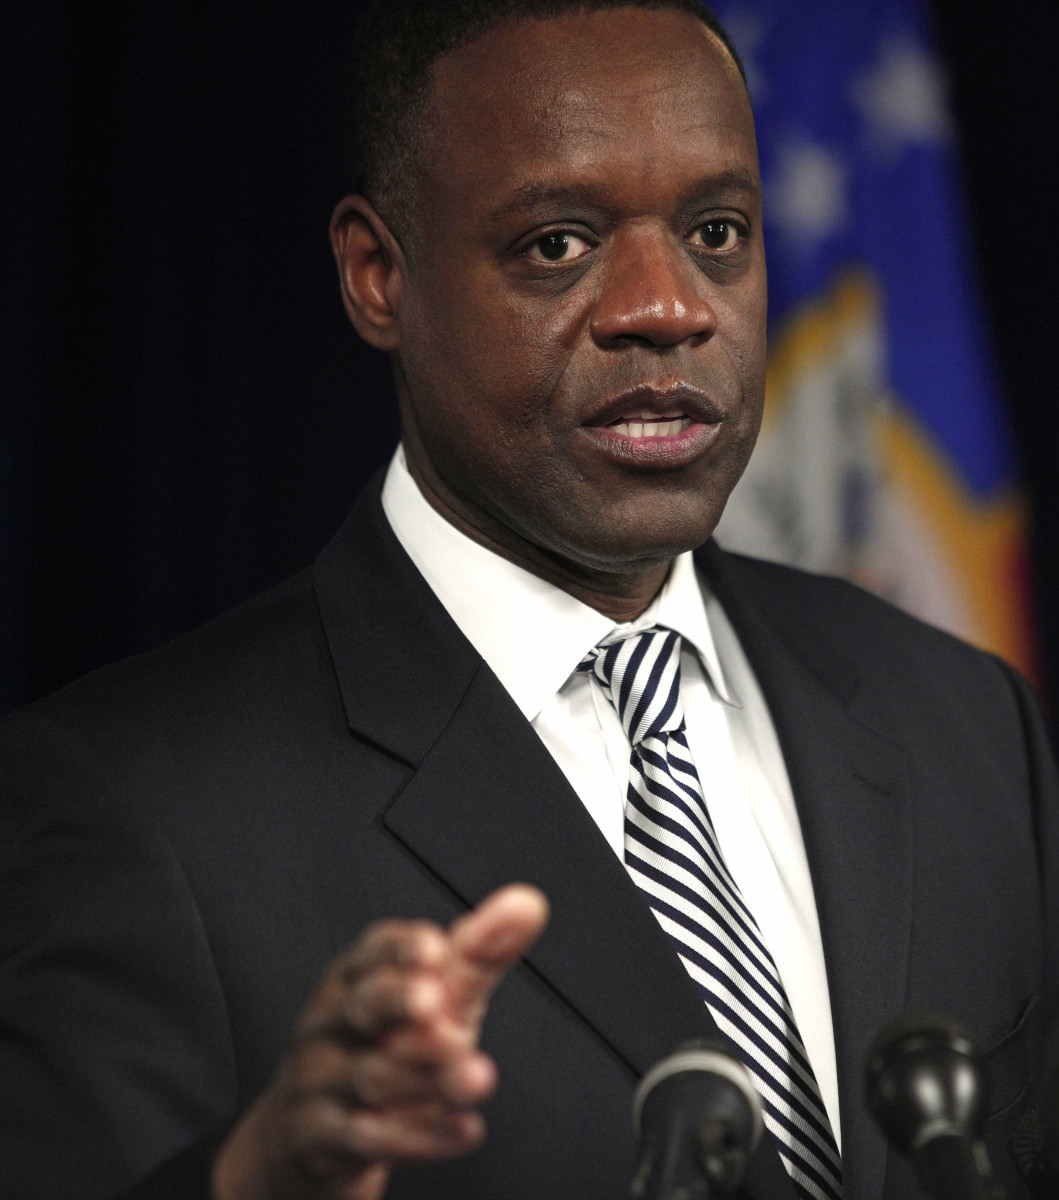 Detroit Emergency Manager Kevyn Orr holds a press conference to discuss federal bankruptcy.